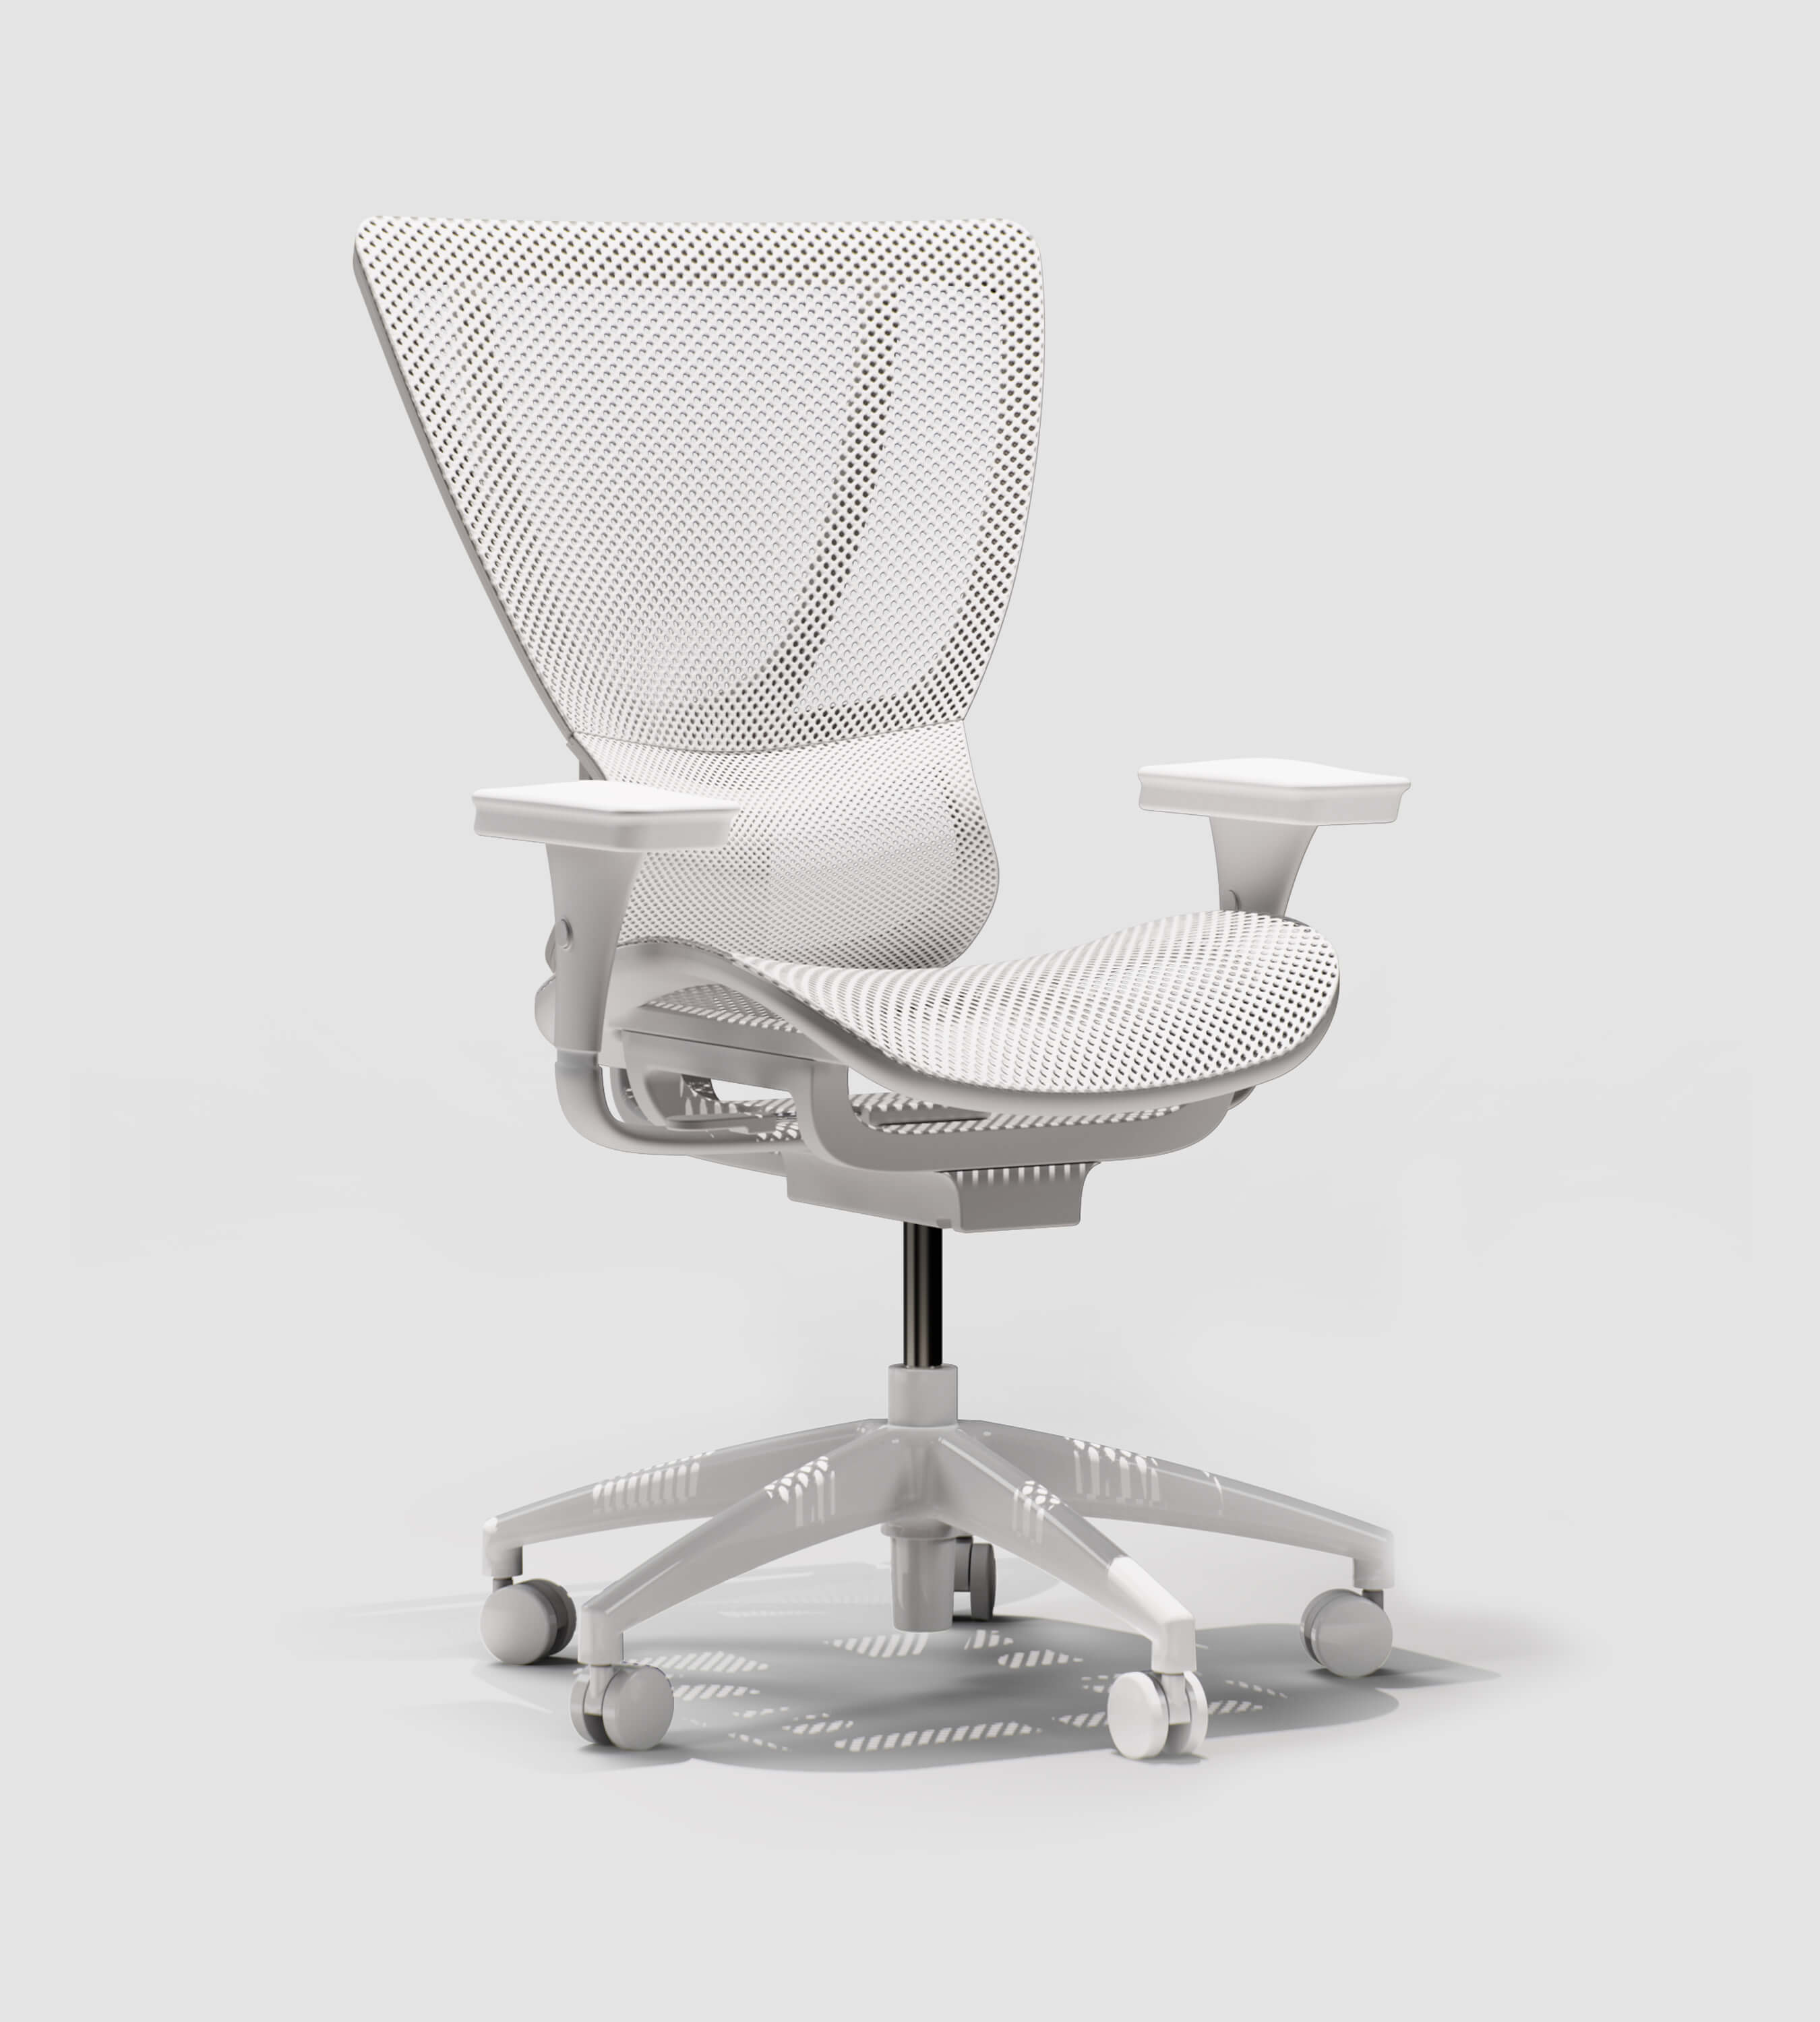 3D CAD Render by Sprout Studios of a white office chair